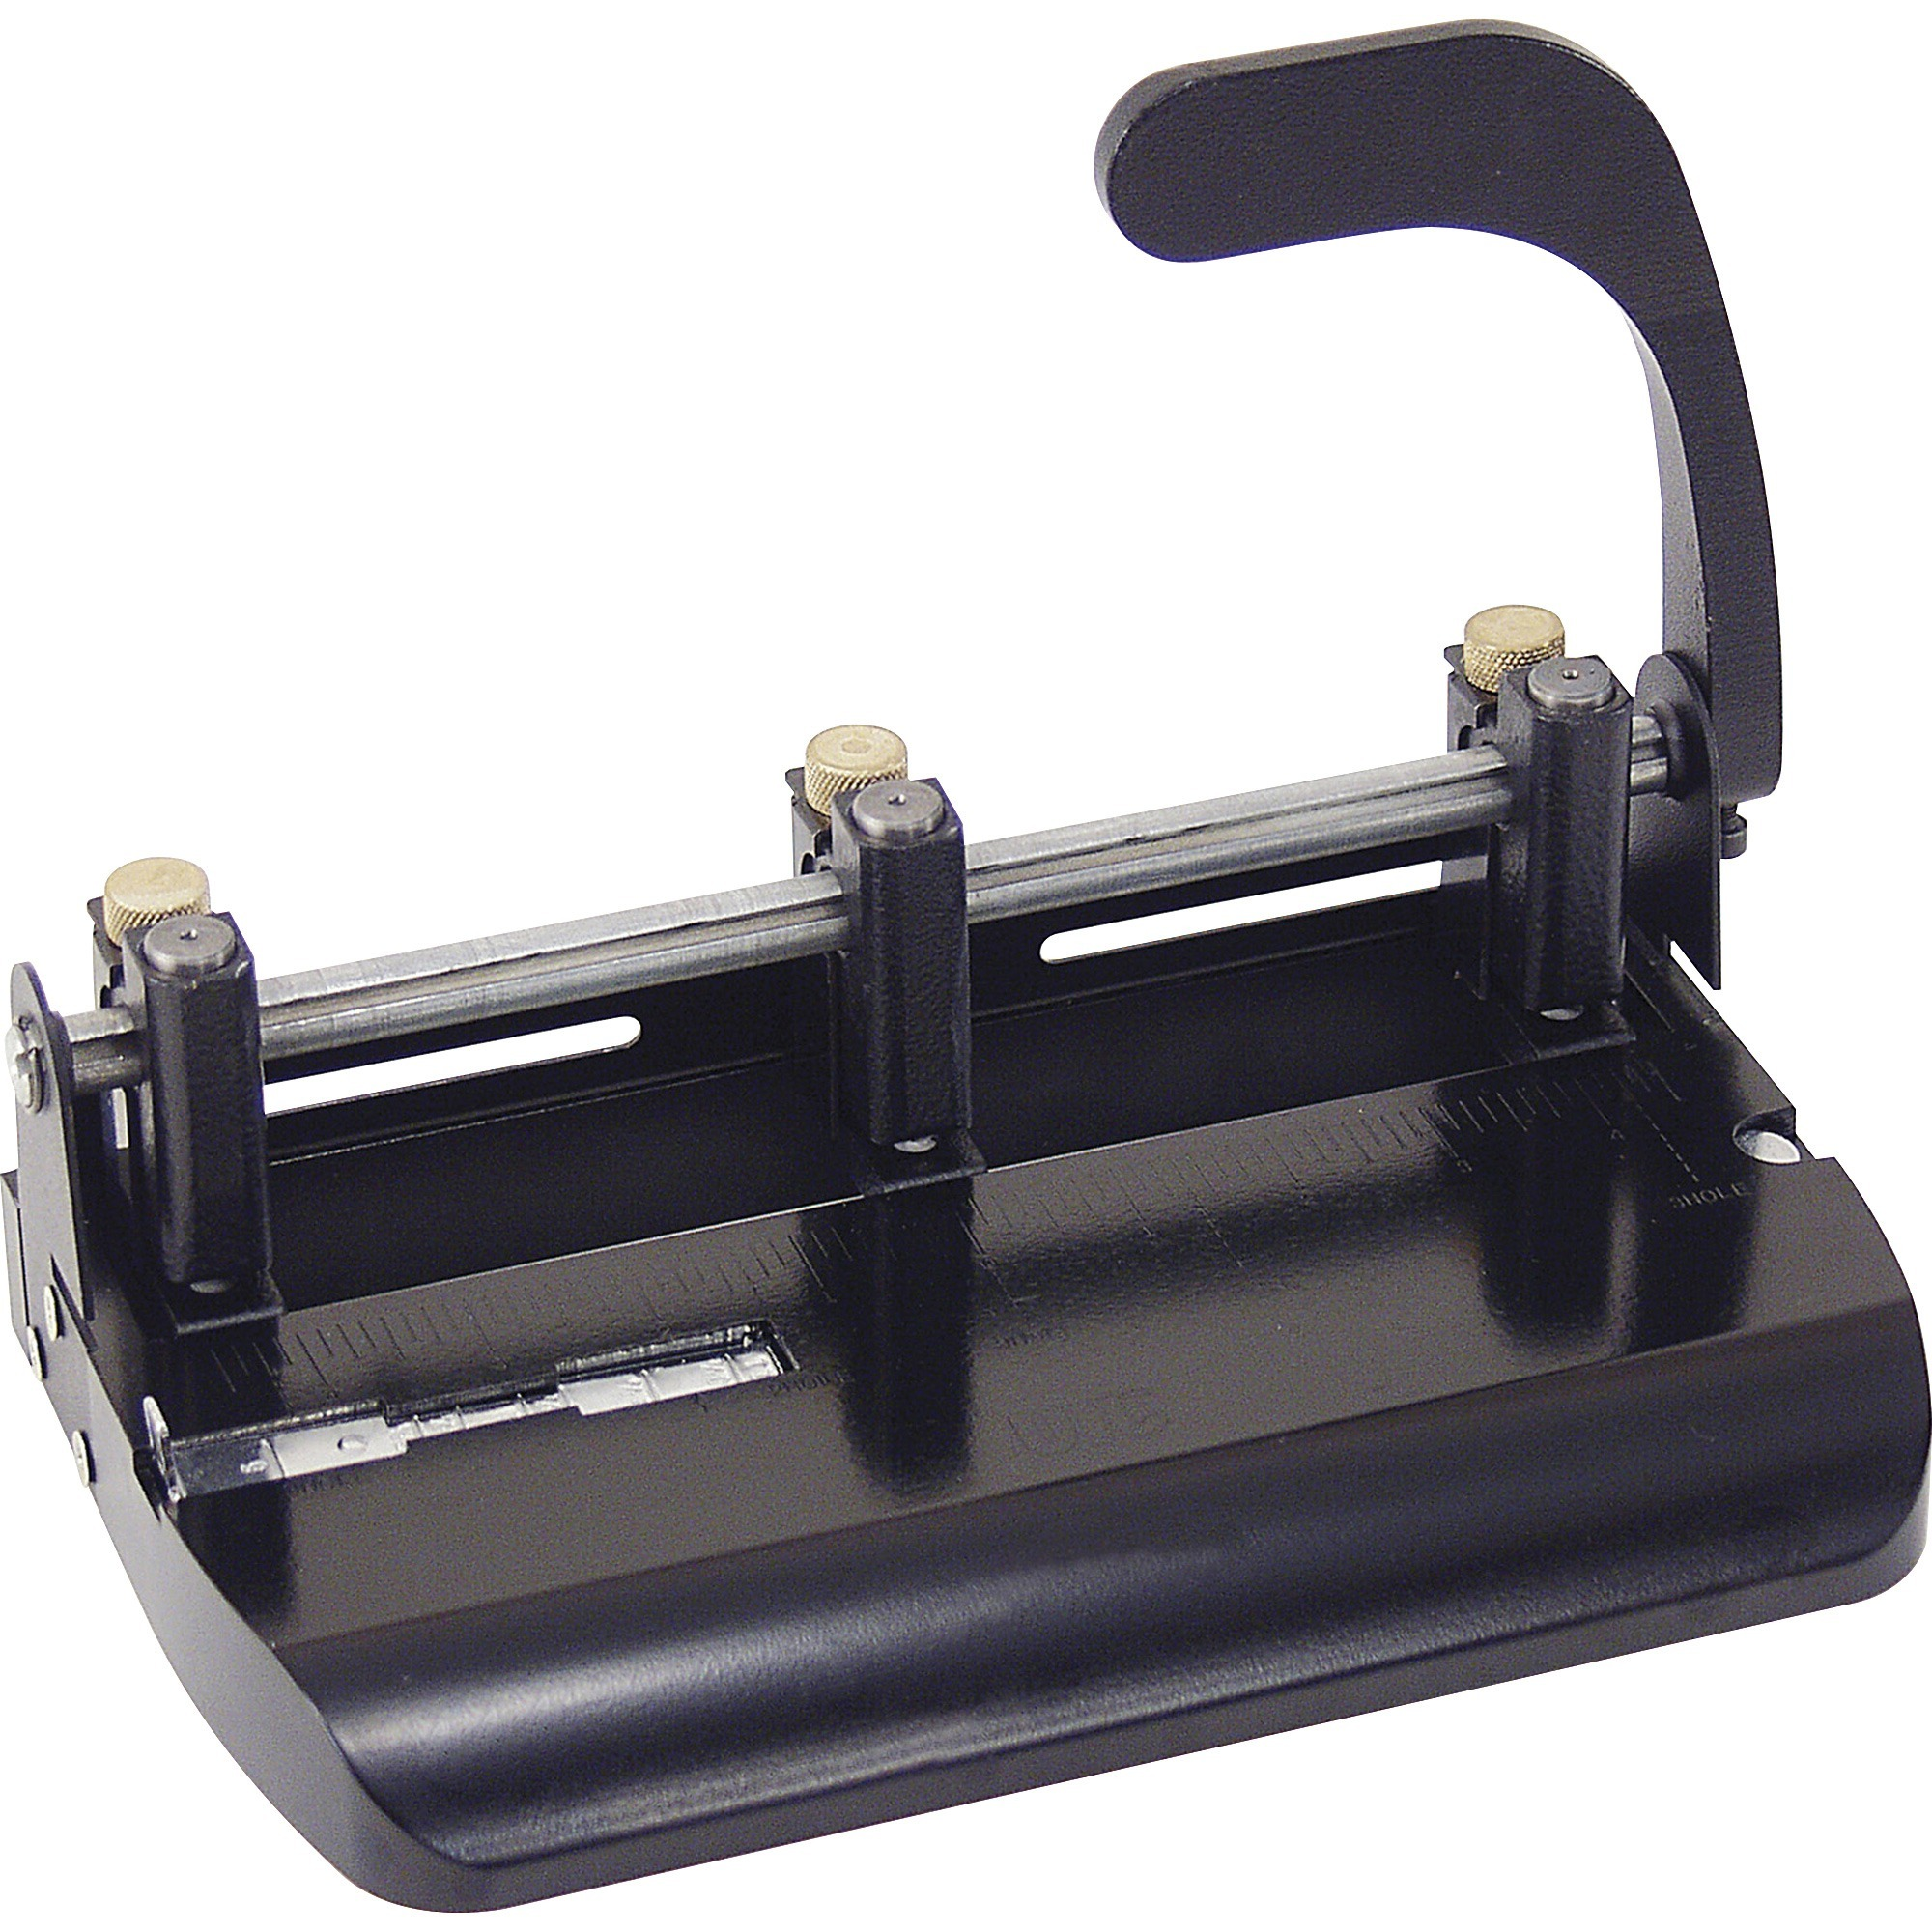 OIC Heavy-Duty Adj. 2-3-Hole Punch